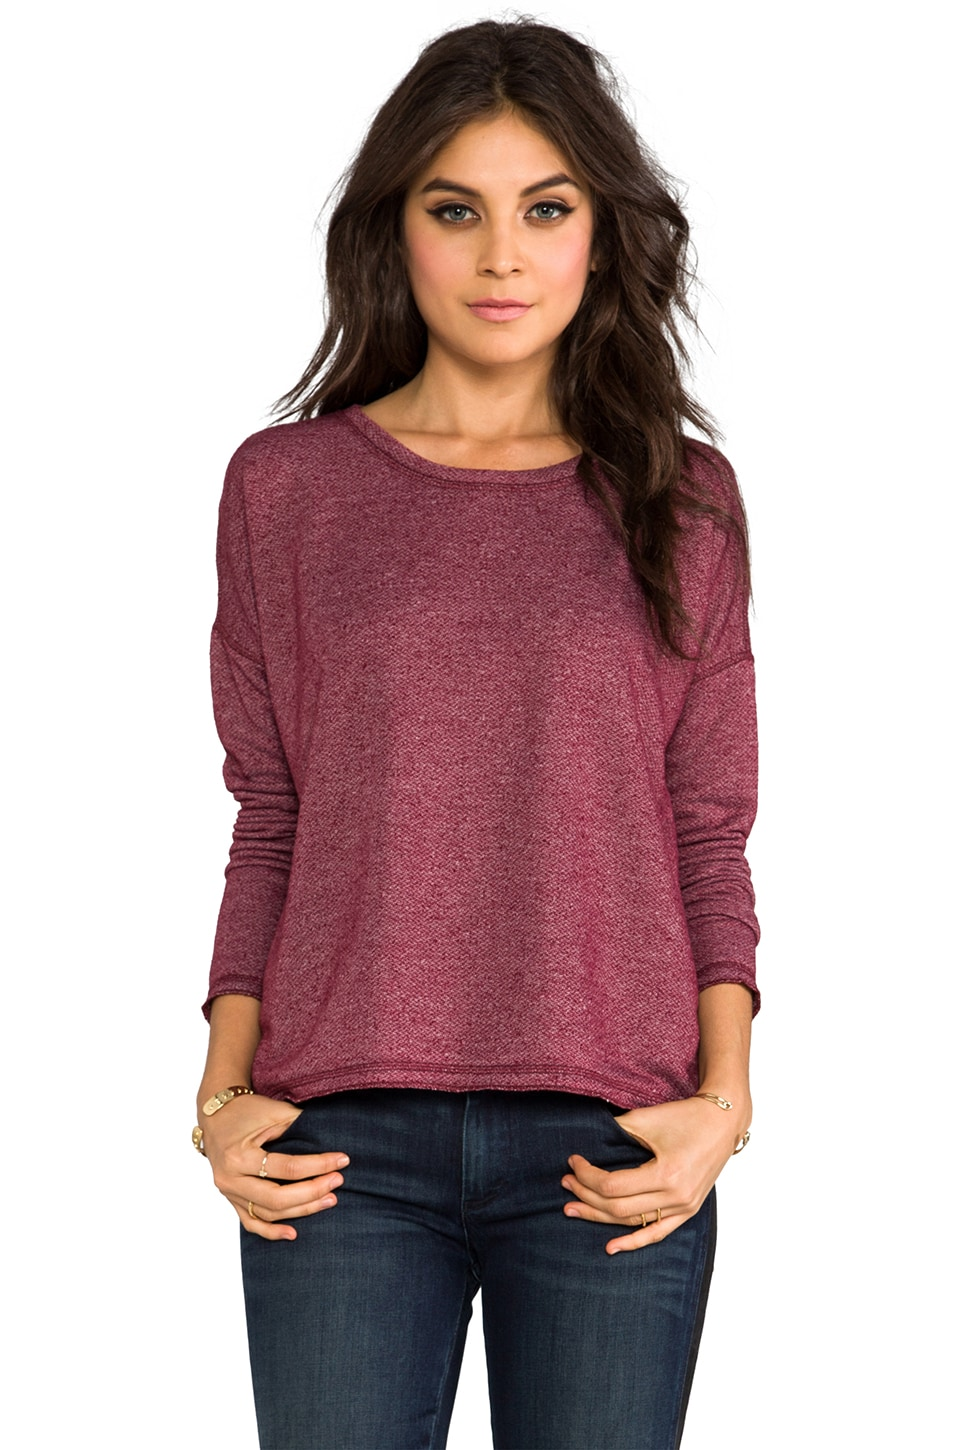 Velvet by Graham & Spencer Dottie Fleece Sweatshirt in Rhumba